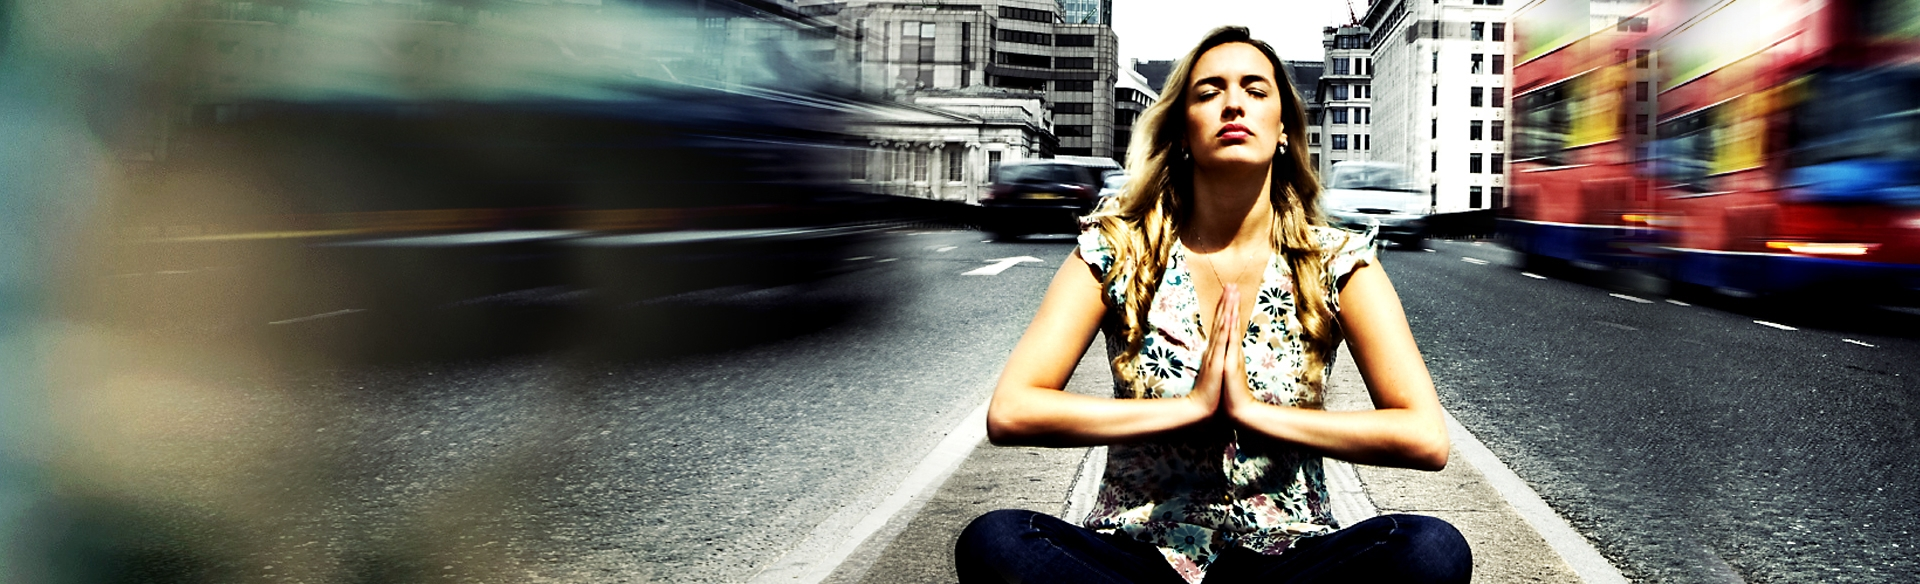 Zen London (@zenlondon) Cover Image